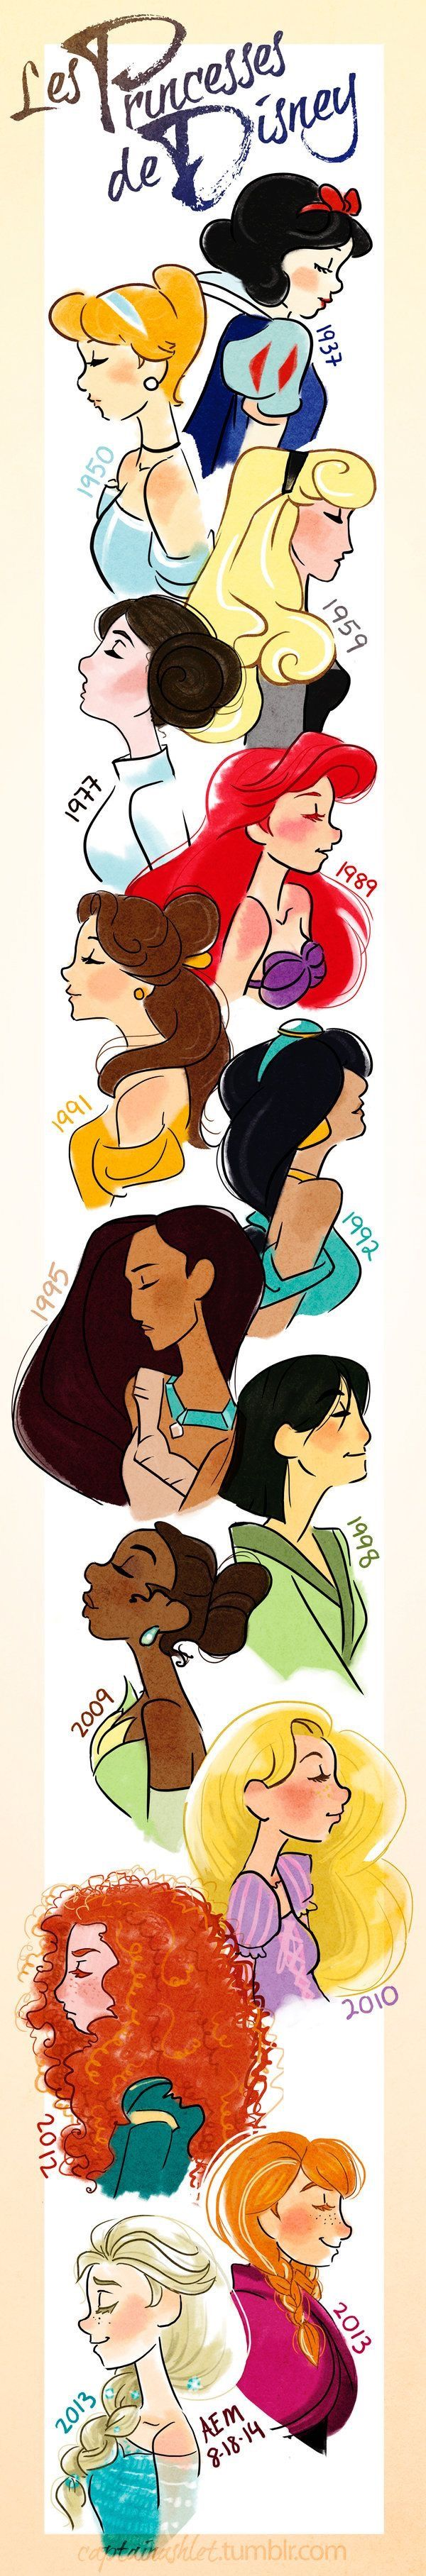 All Disney princesses in order Princess Leia is not a technical Disney princess because Disney rudely left her out